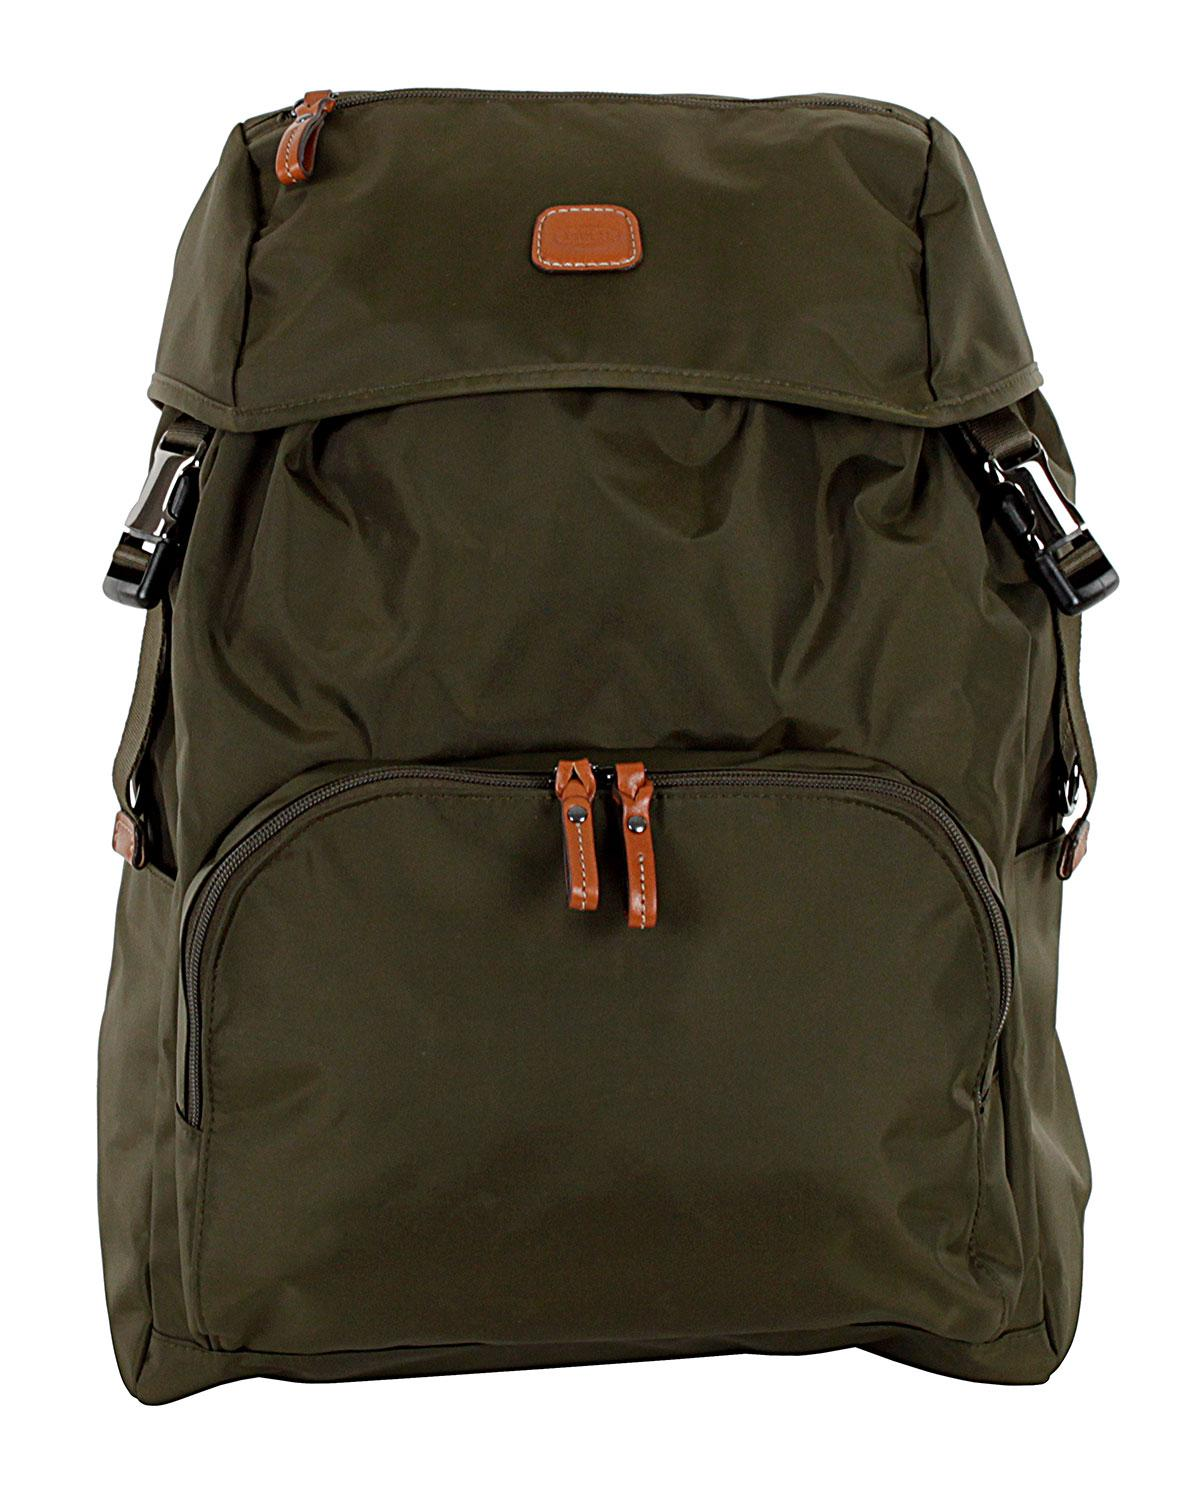 f7fe1e3bc69971 Bric s - Green Olive X-bag Excursion Backpack for Men - Lyst. View  fullscreen